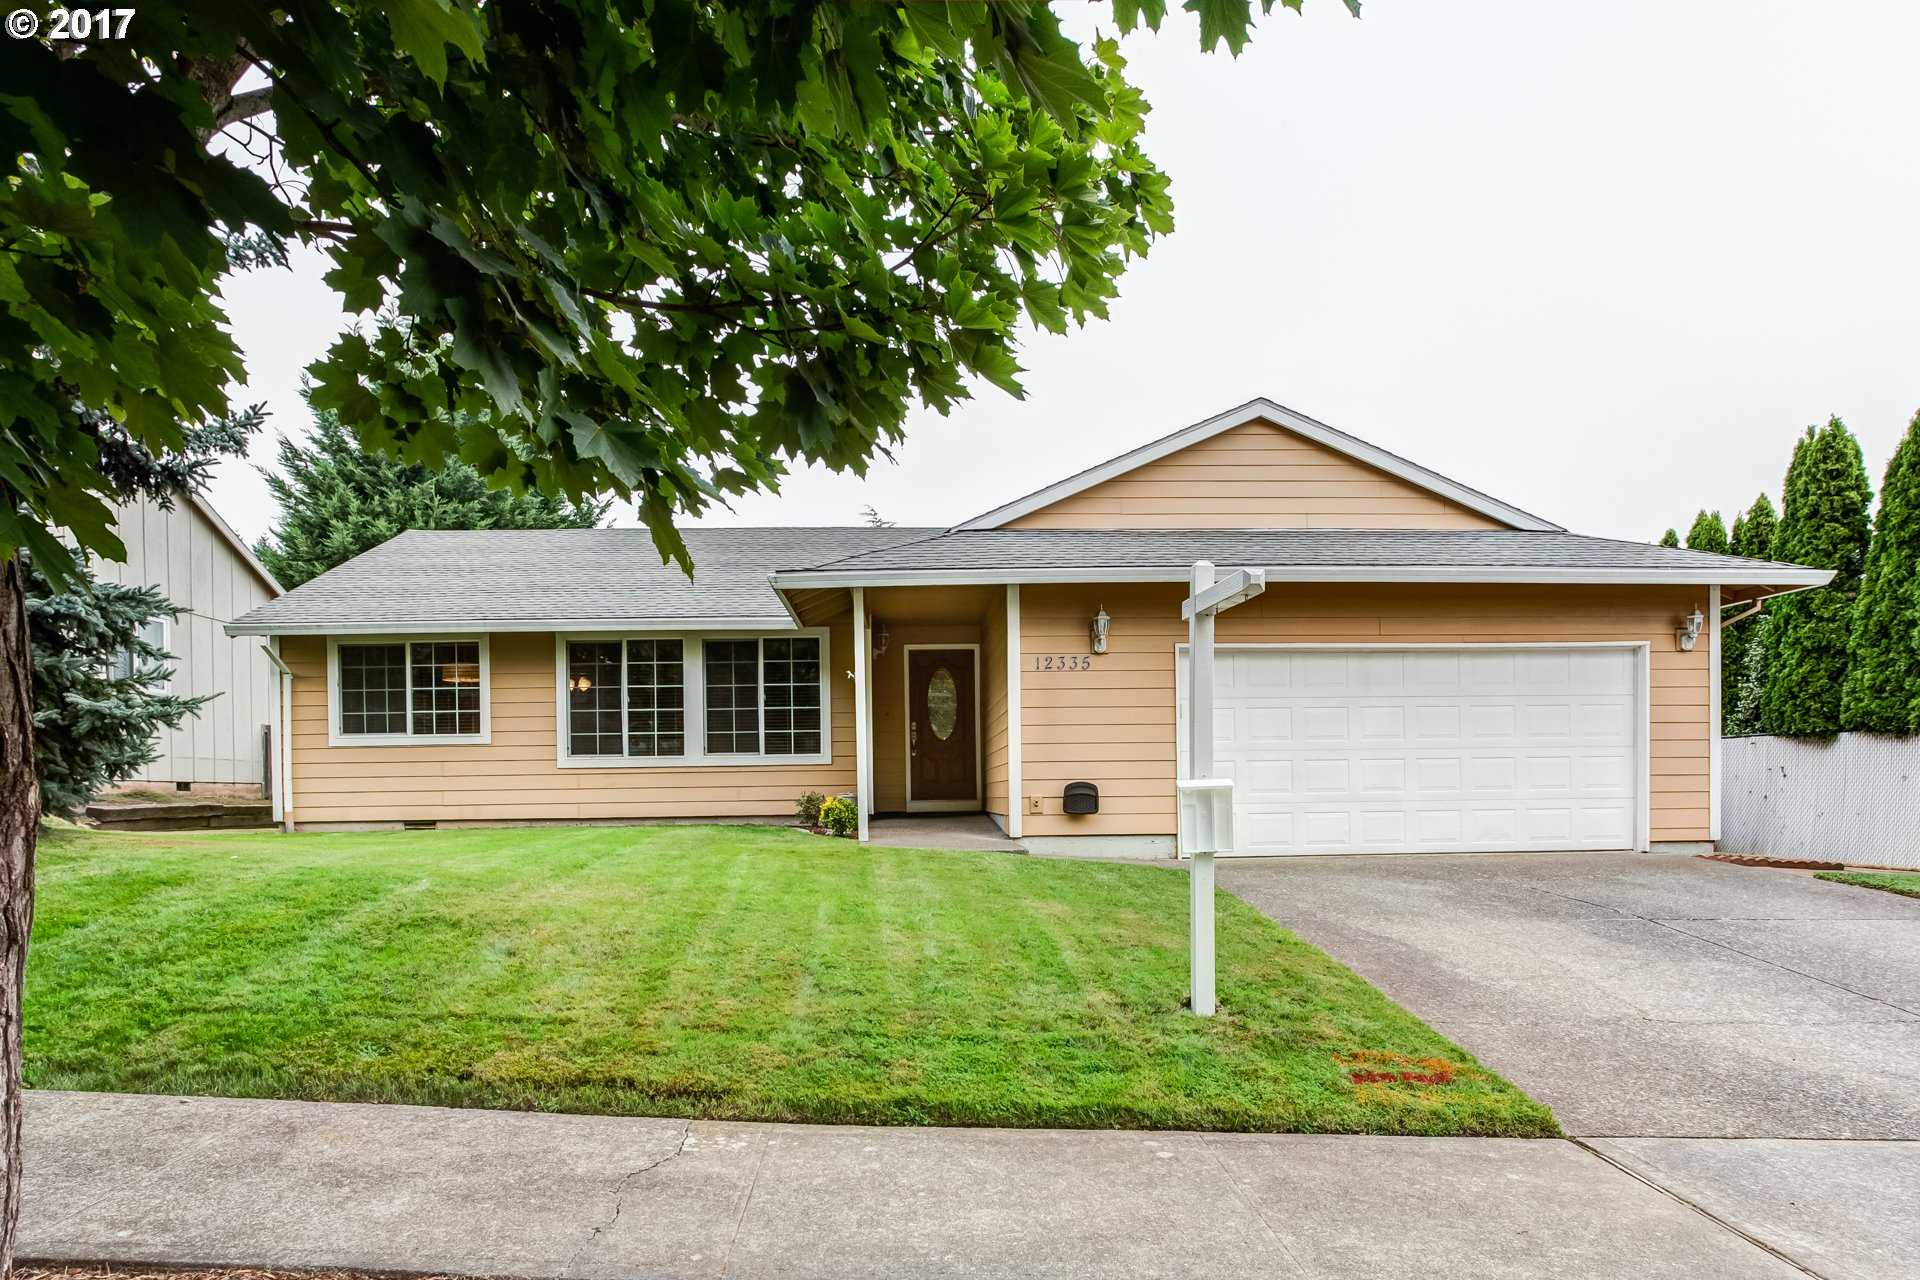 $379,900 - 3Br/2Ba -  for Sale in Greenway, Beaverton